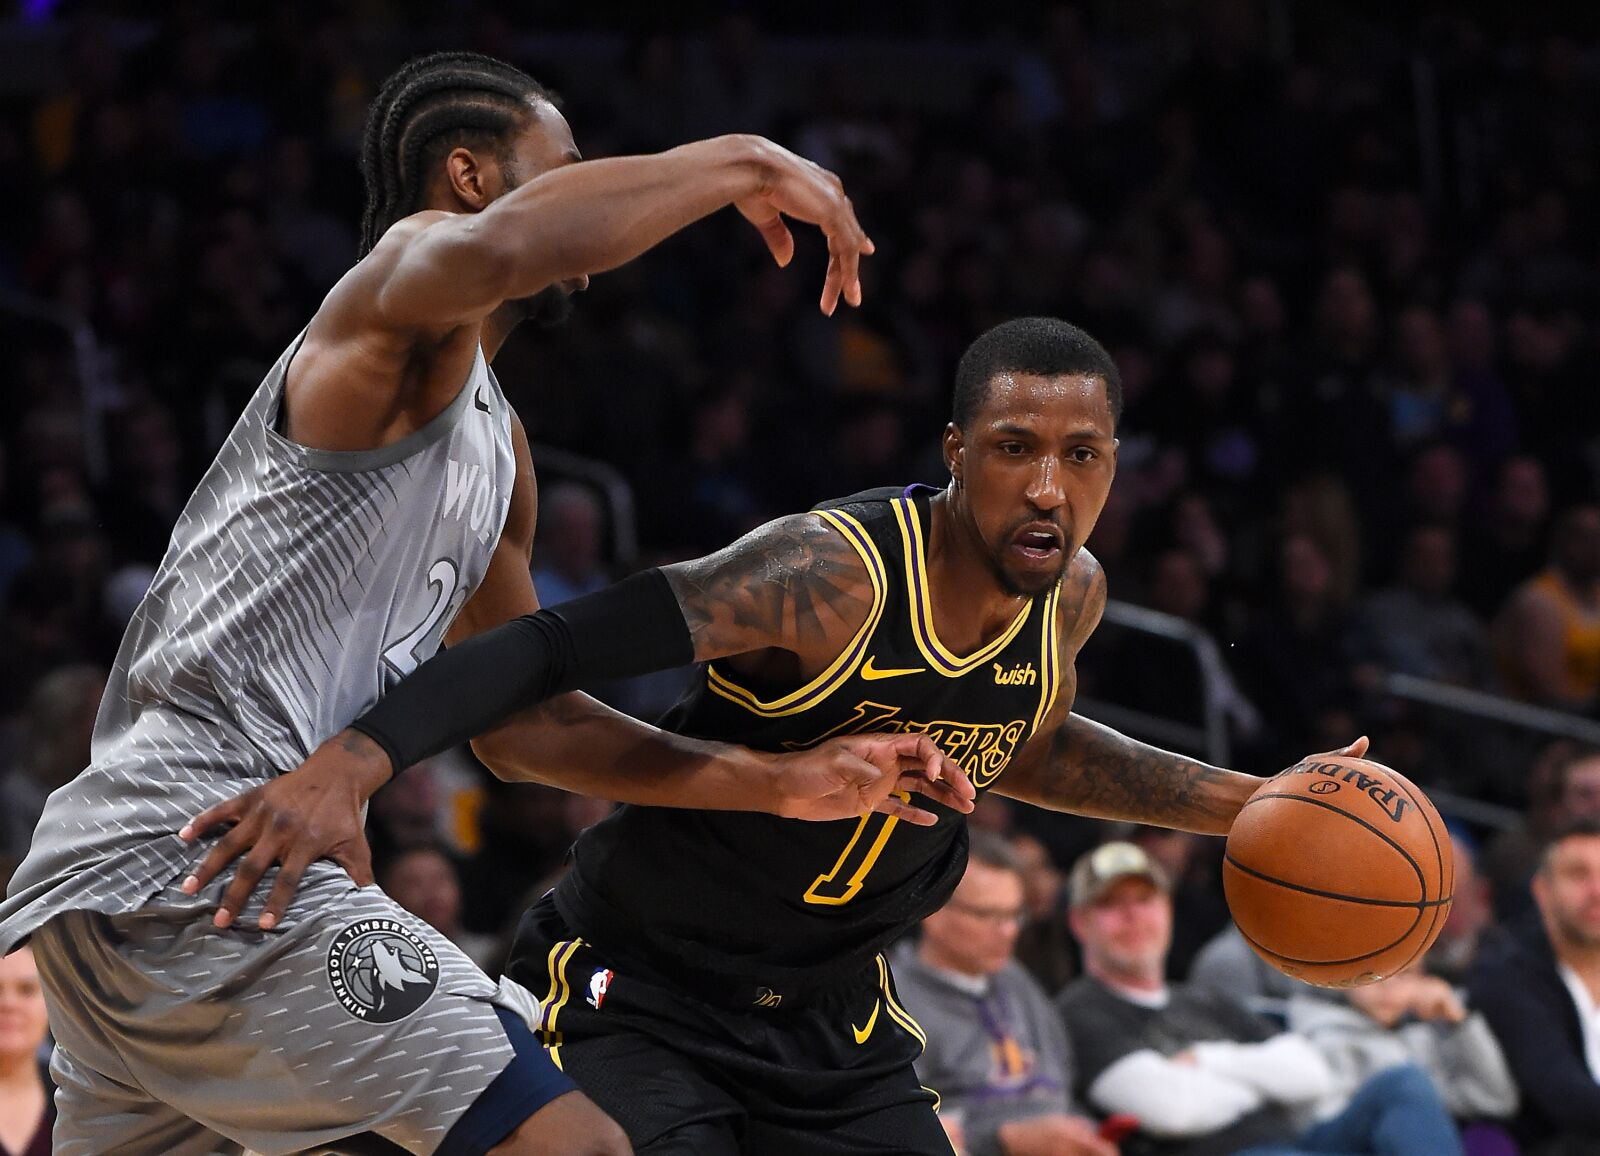 Game between the Denver Nuggets and the Minnesota Timberwolves played on Fri July 6th 2018 The Nuggets beat the Timberwolves 70 to 69 Isaiah Cousins led the scoring